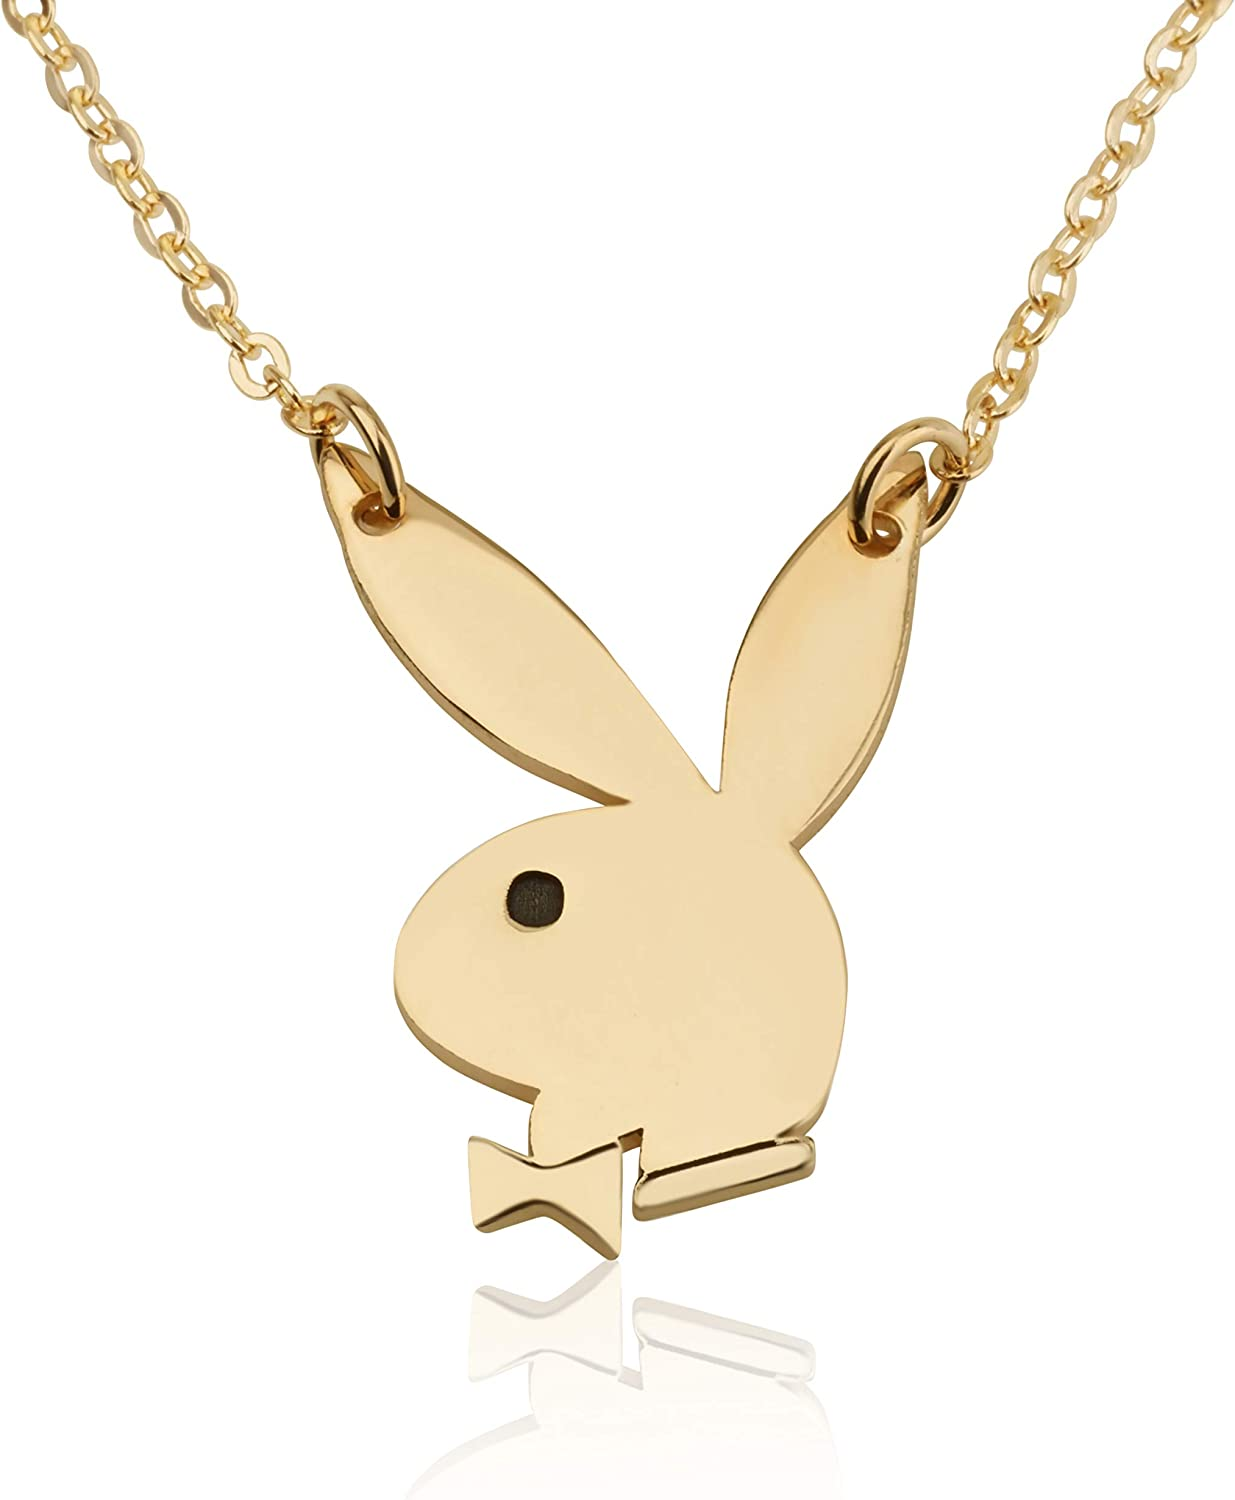 Handmade Playboy Bunny Symbol Necklace Charm Adult Pendant Gift For Her BFF Jewelry best friend gifts